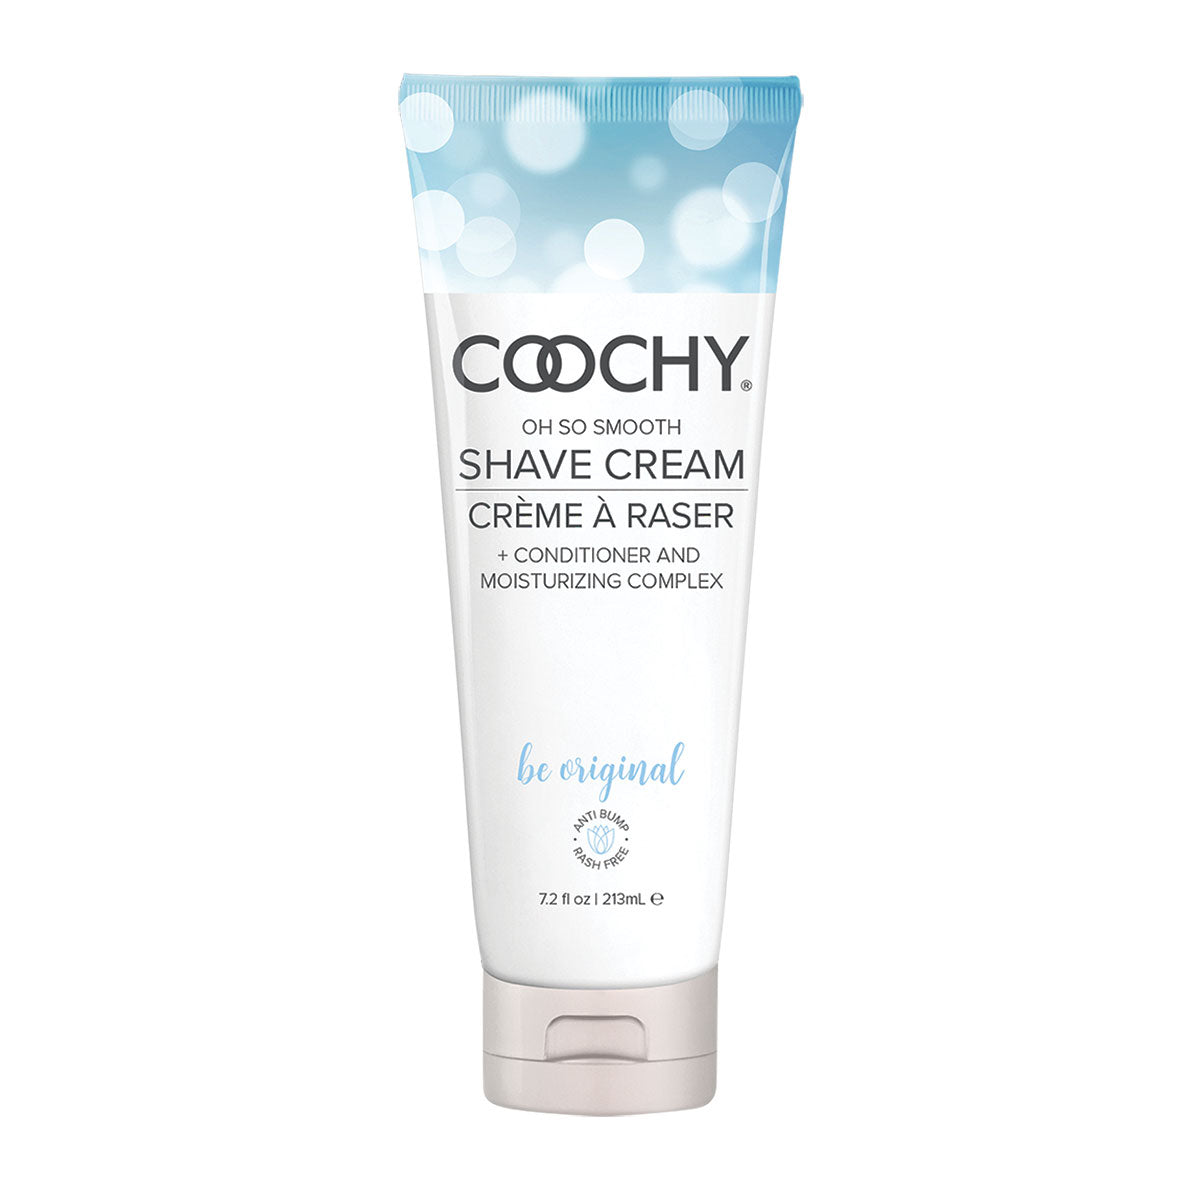 Coochy Shave Cream 7.2oz - Be Original